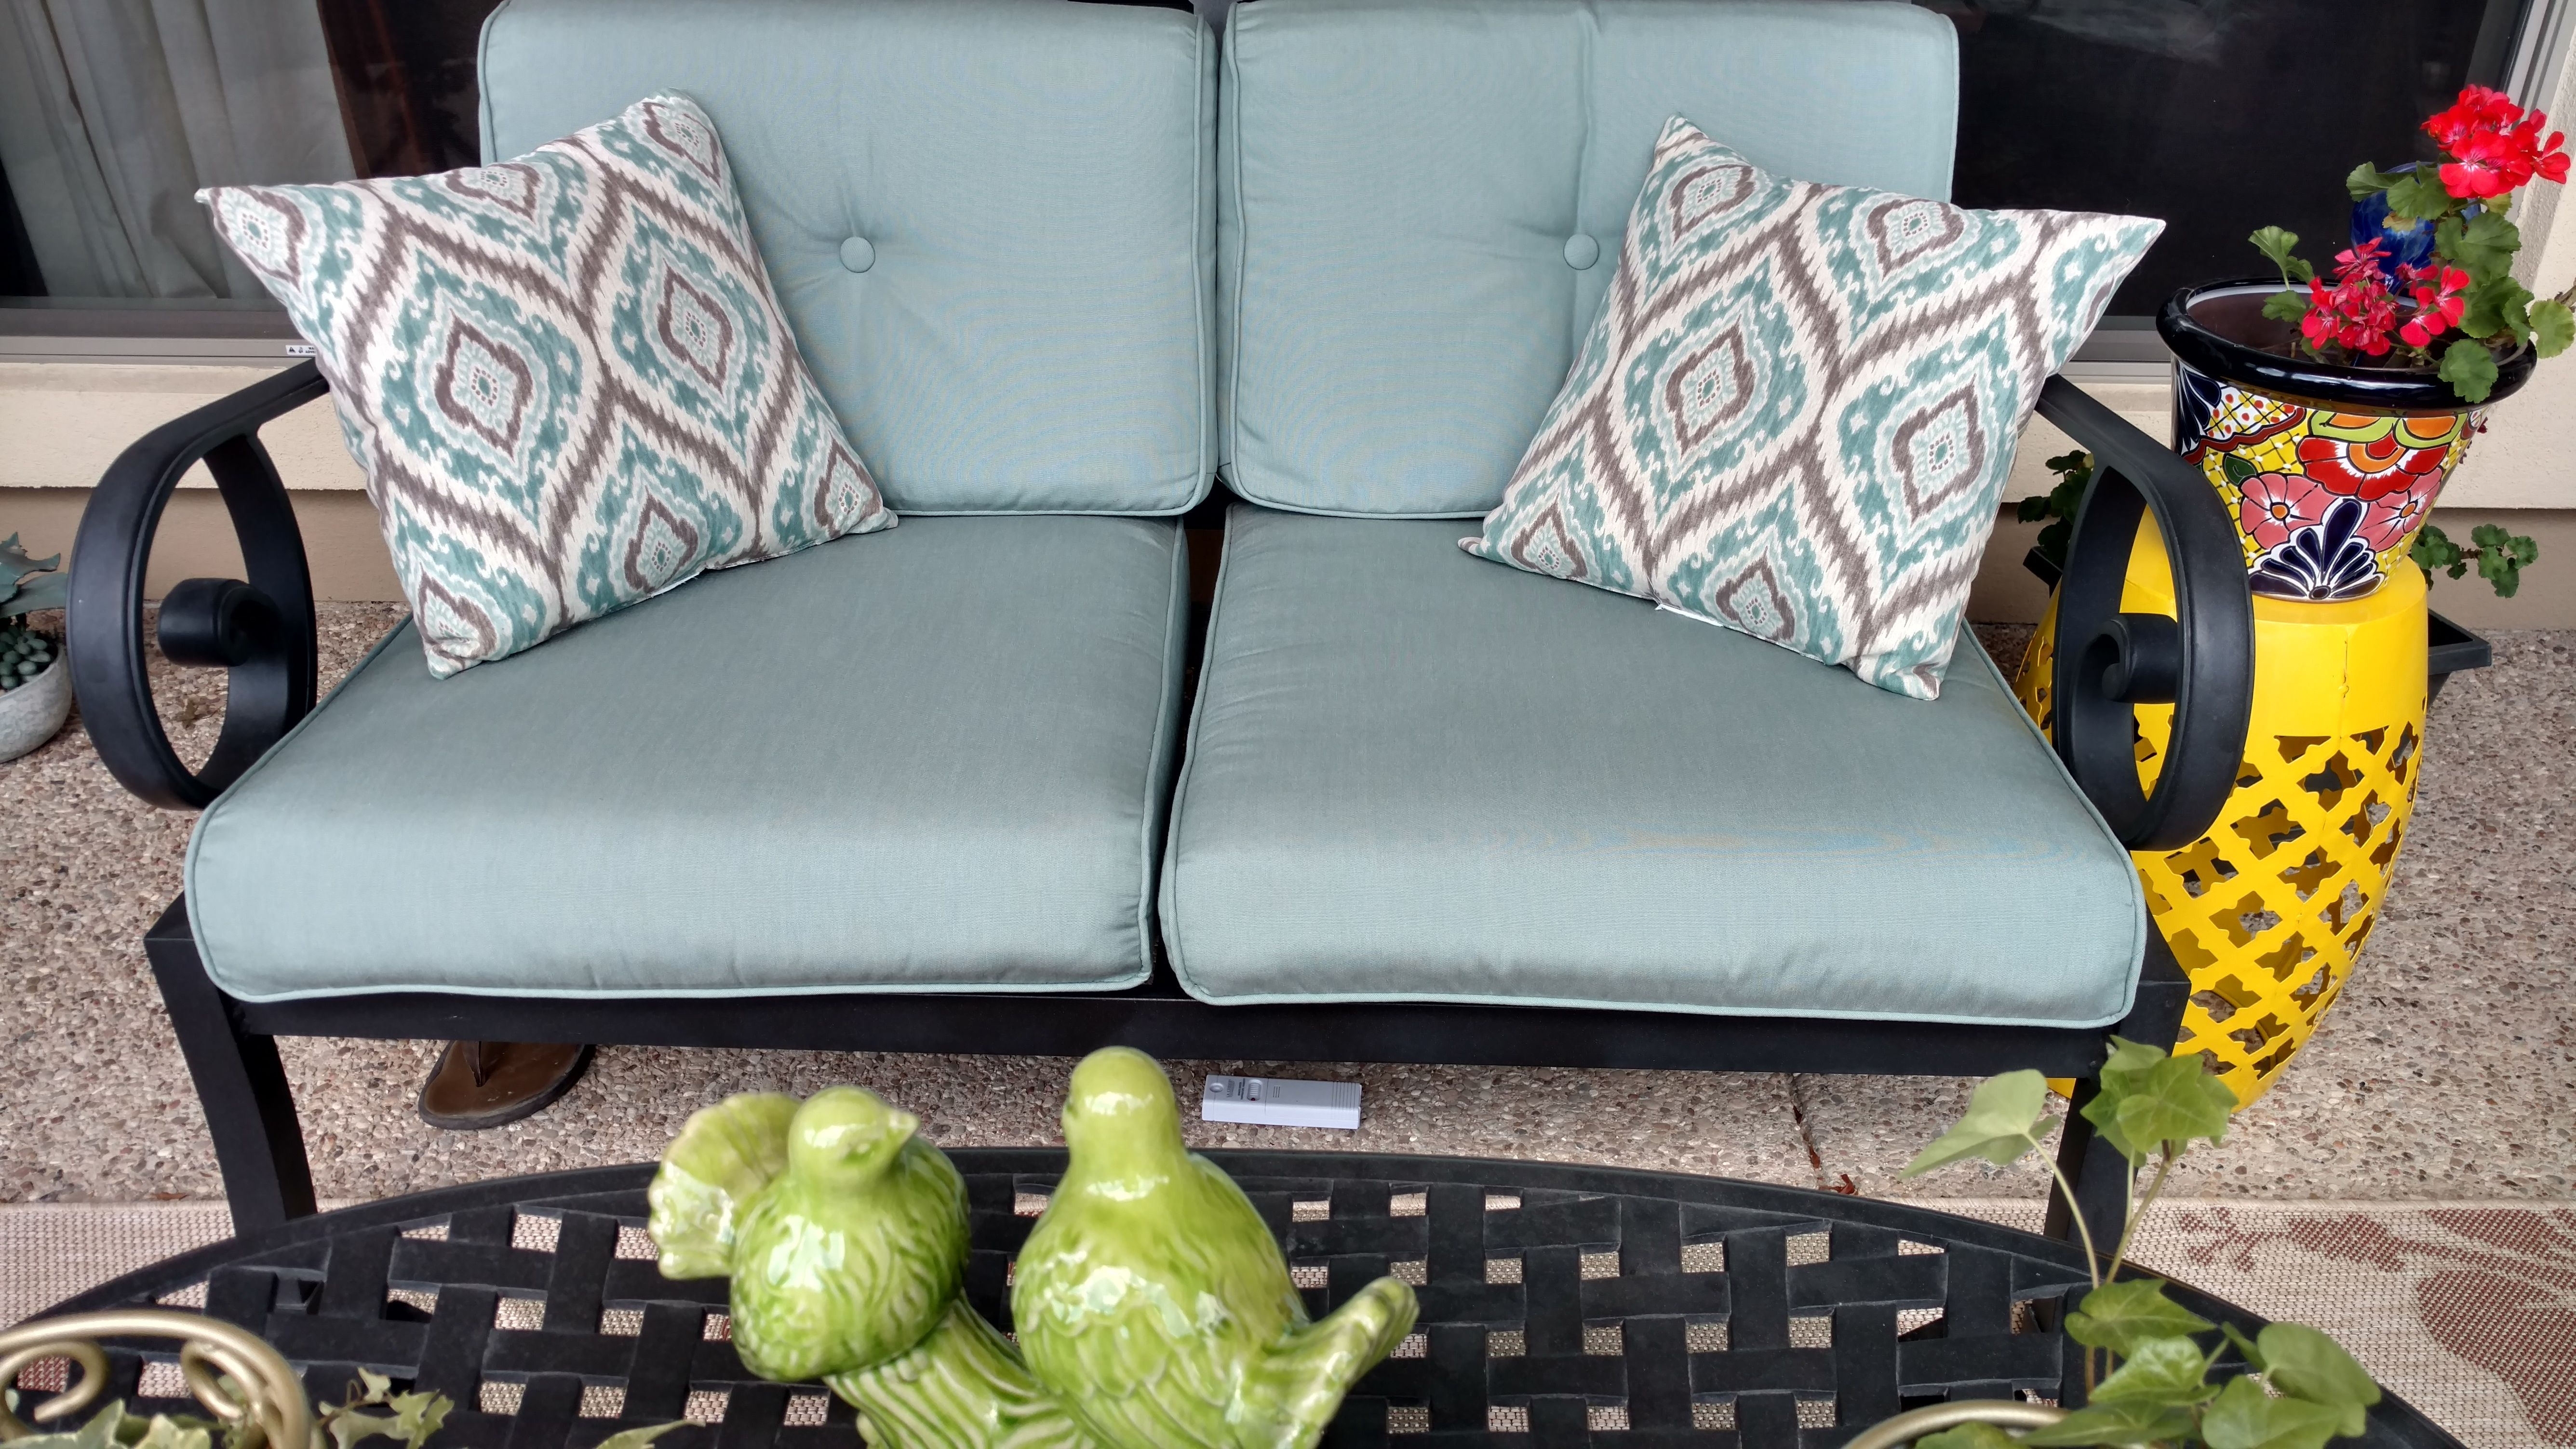 Outdoor Patio Furniture Cushions Recovered In Sunbrella Canvas Spa